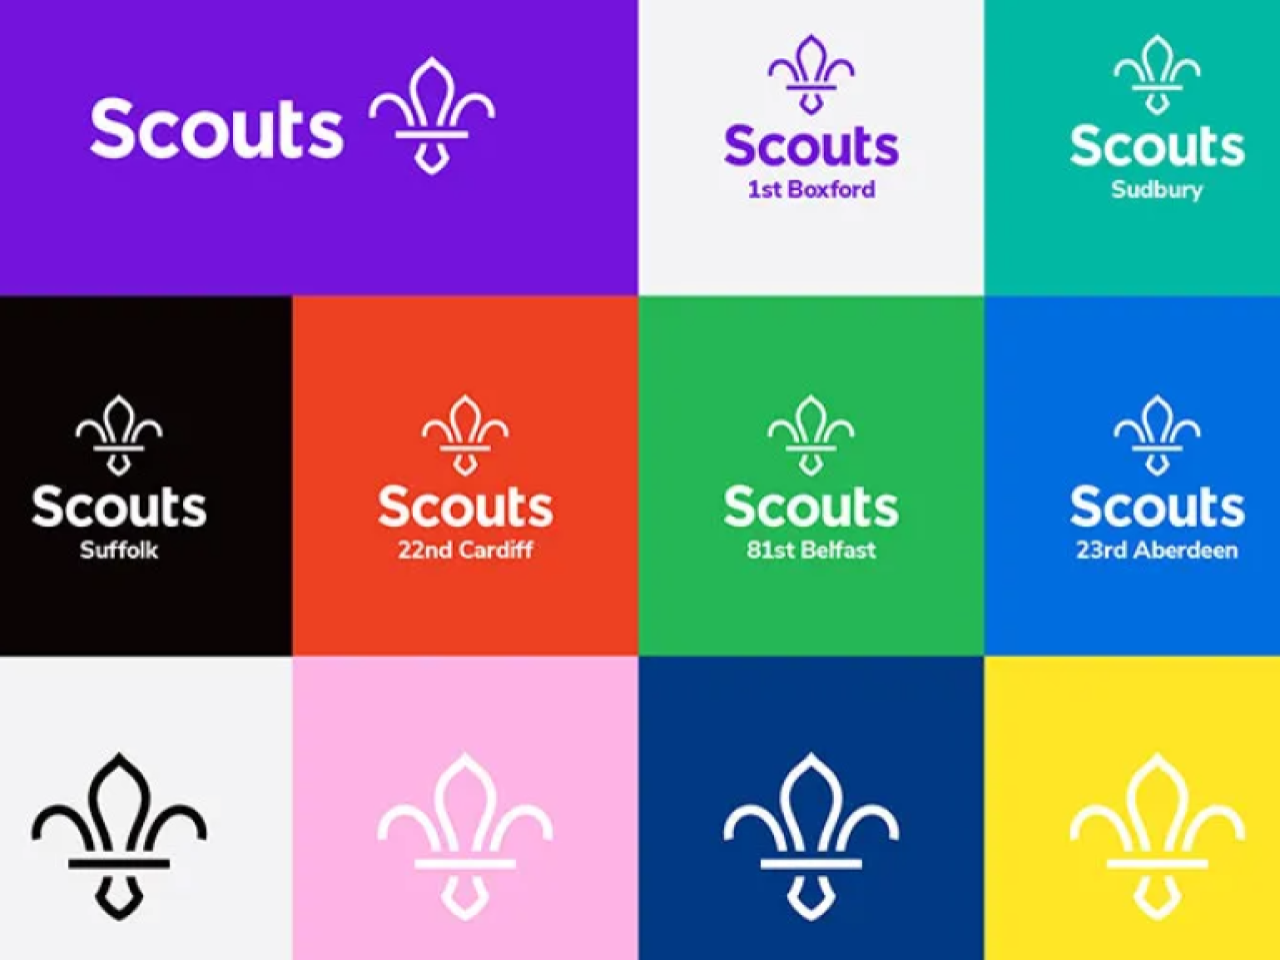 The new Scouts logo